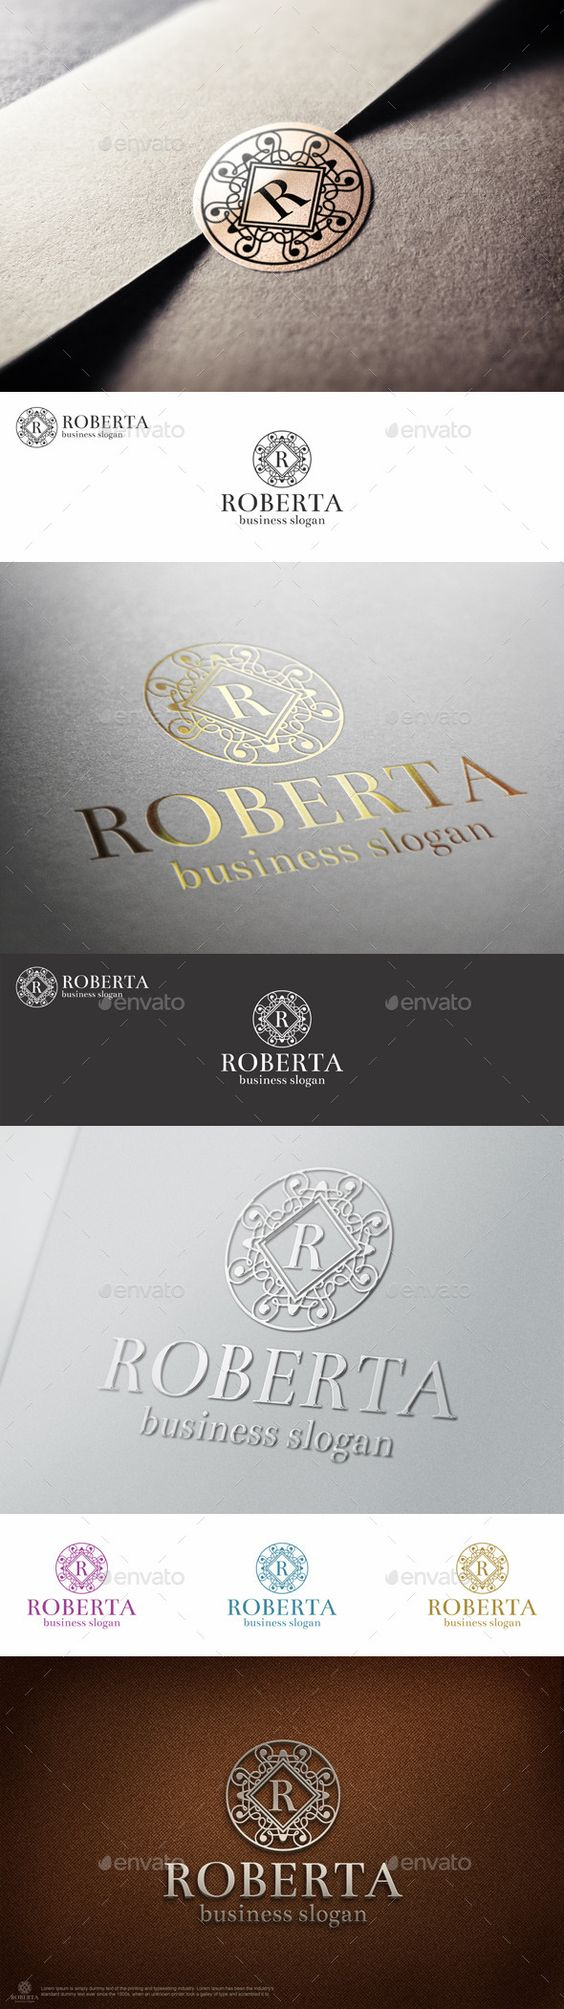 Restaurant crest logo and luxury restaurant on pinterest for Best names for boutique hotels